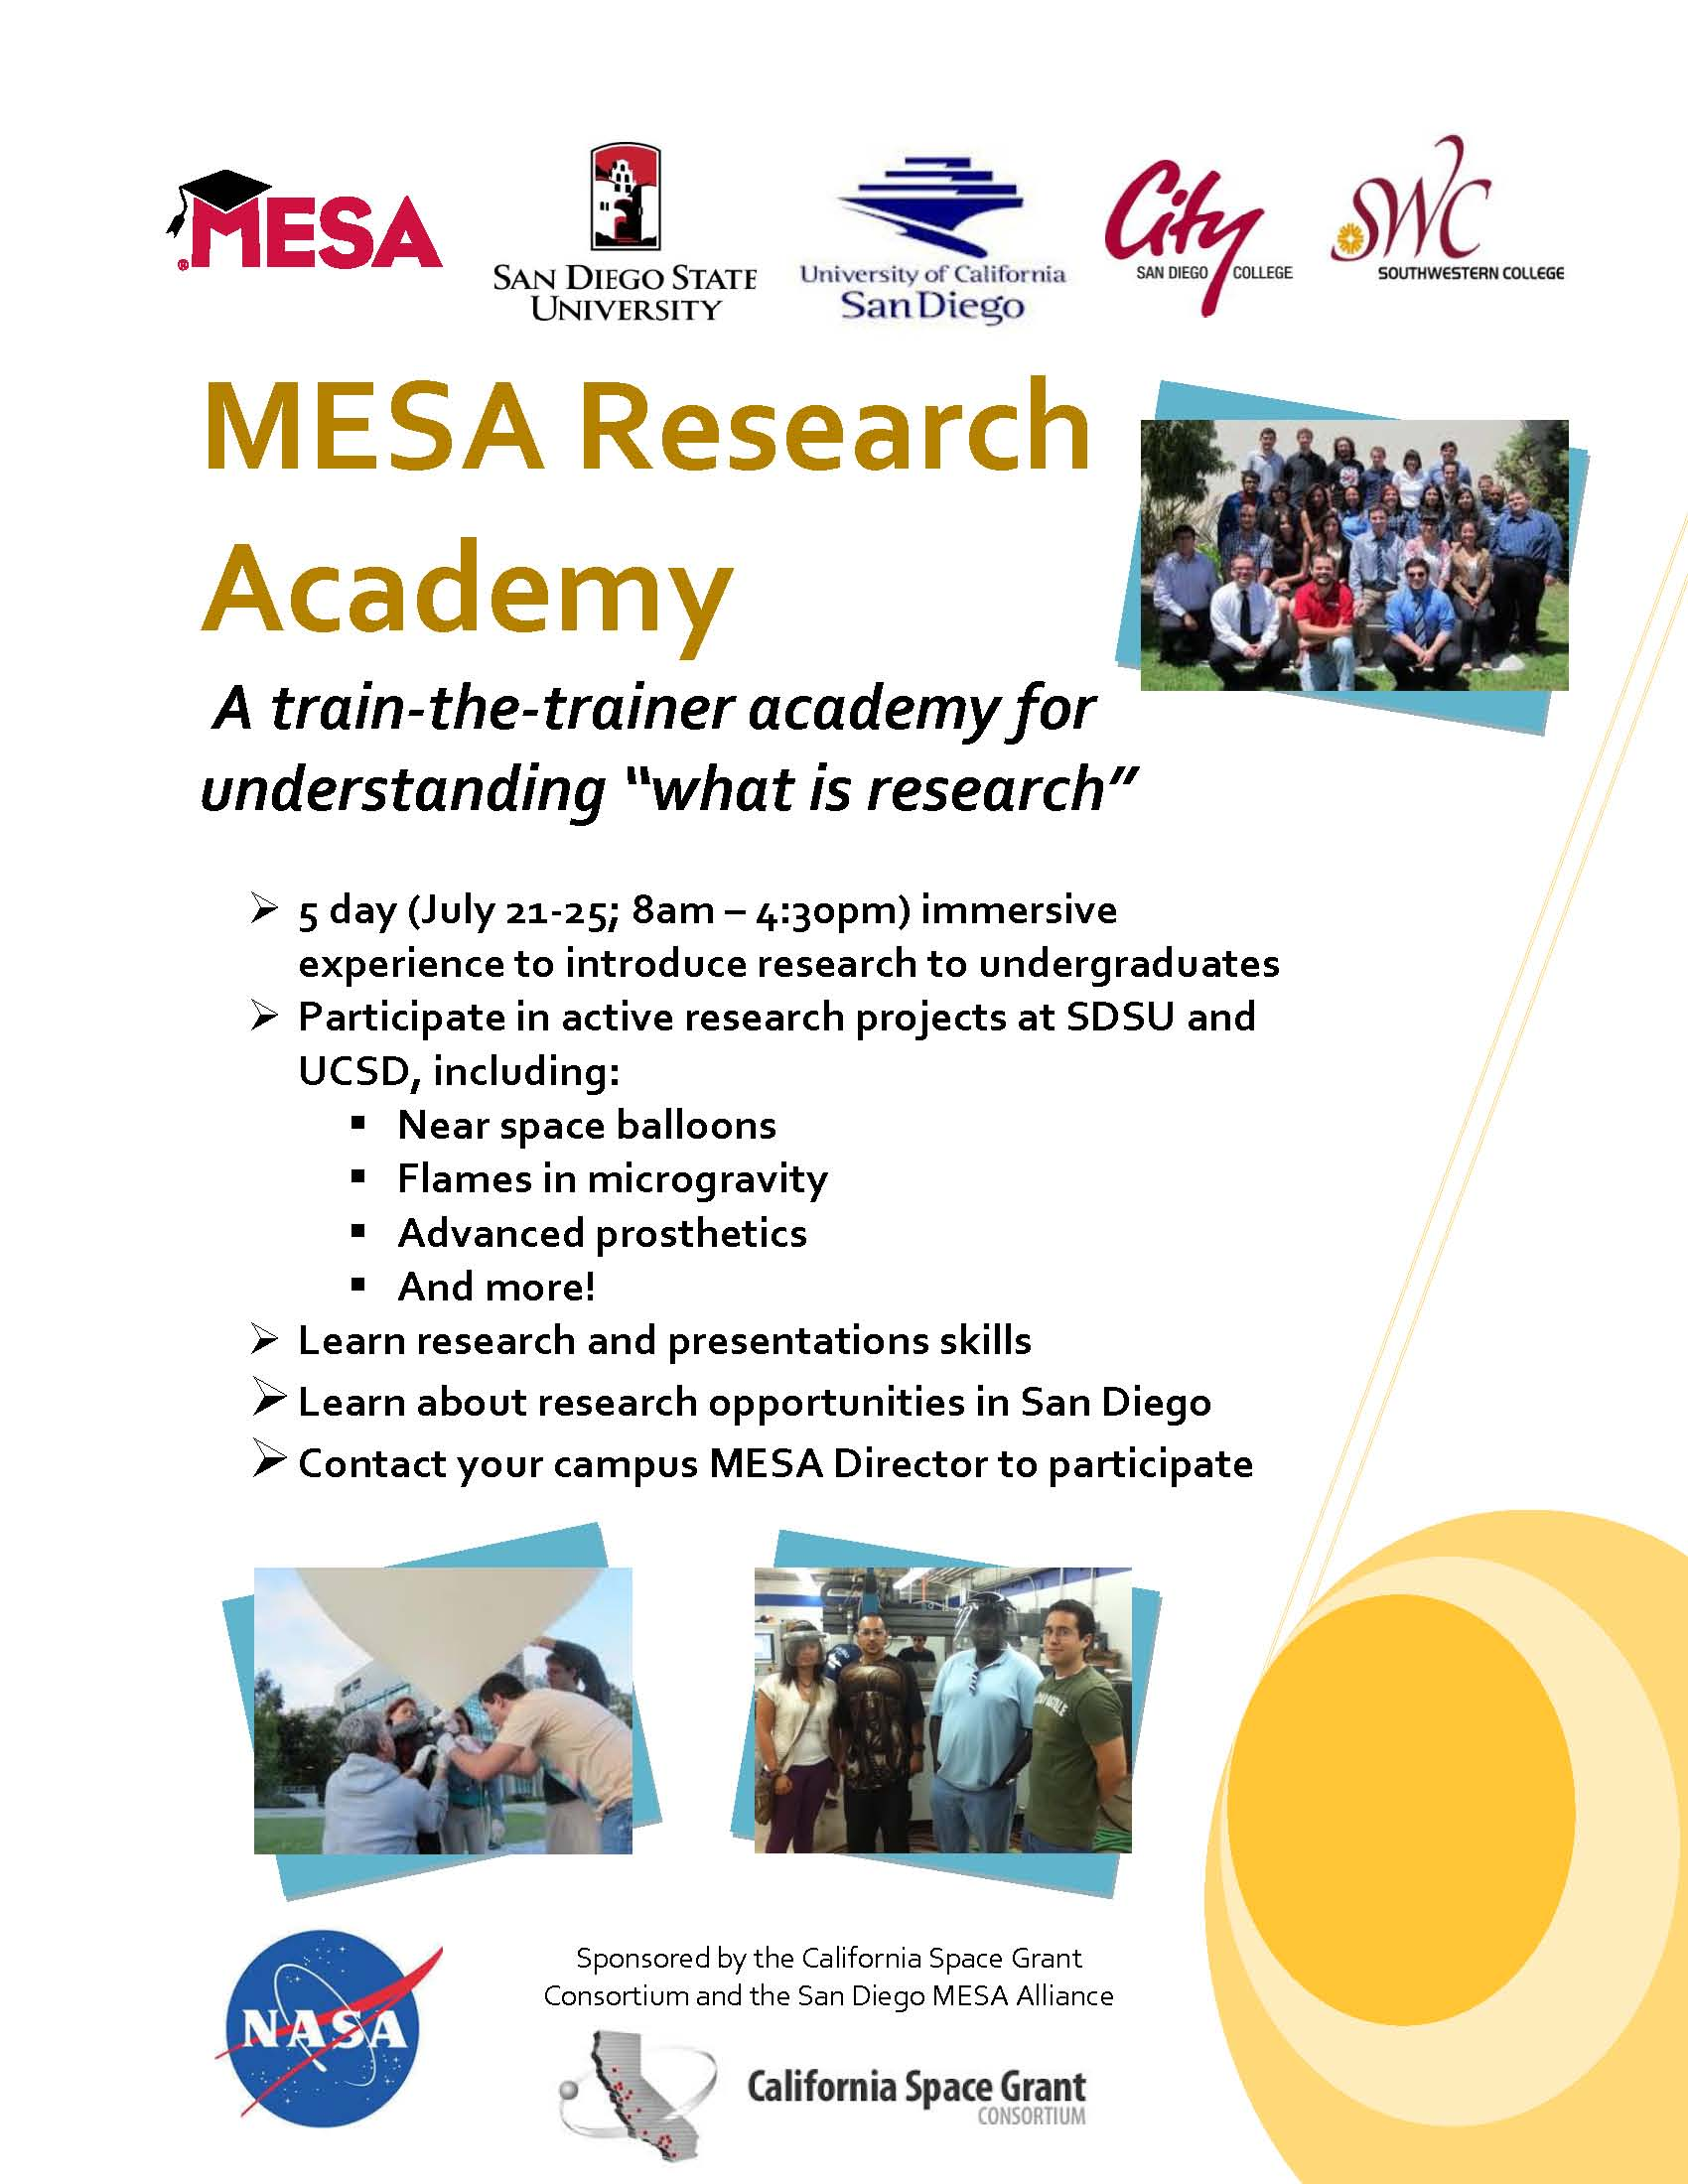 MESA Research Academy flyer